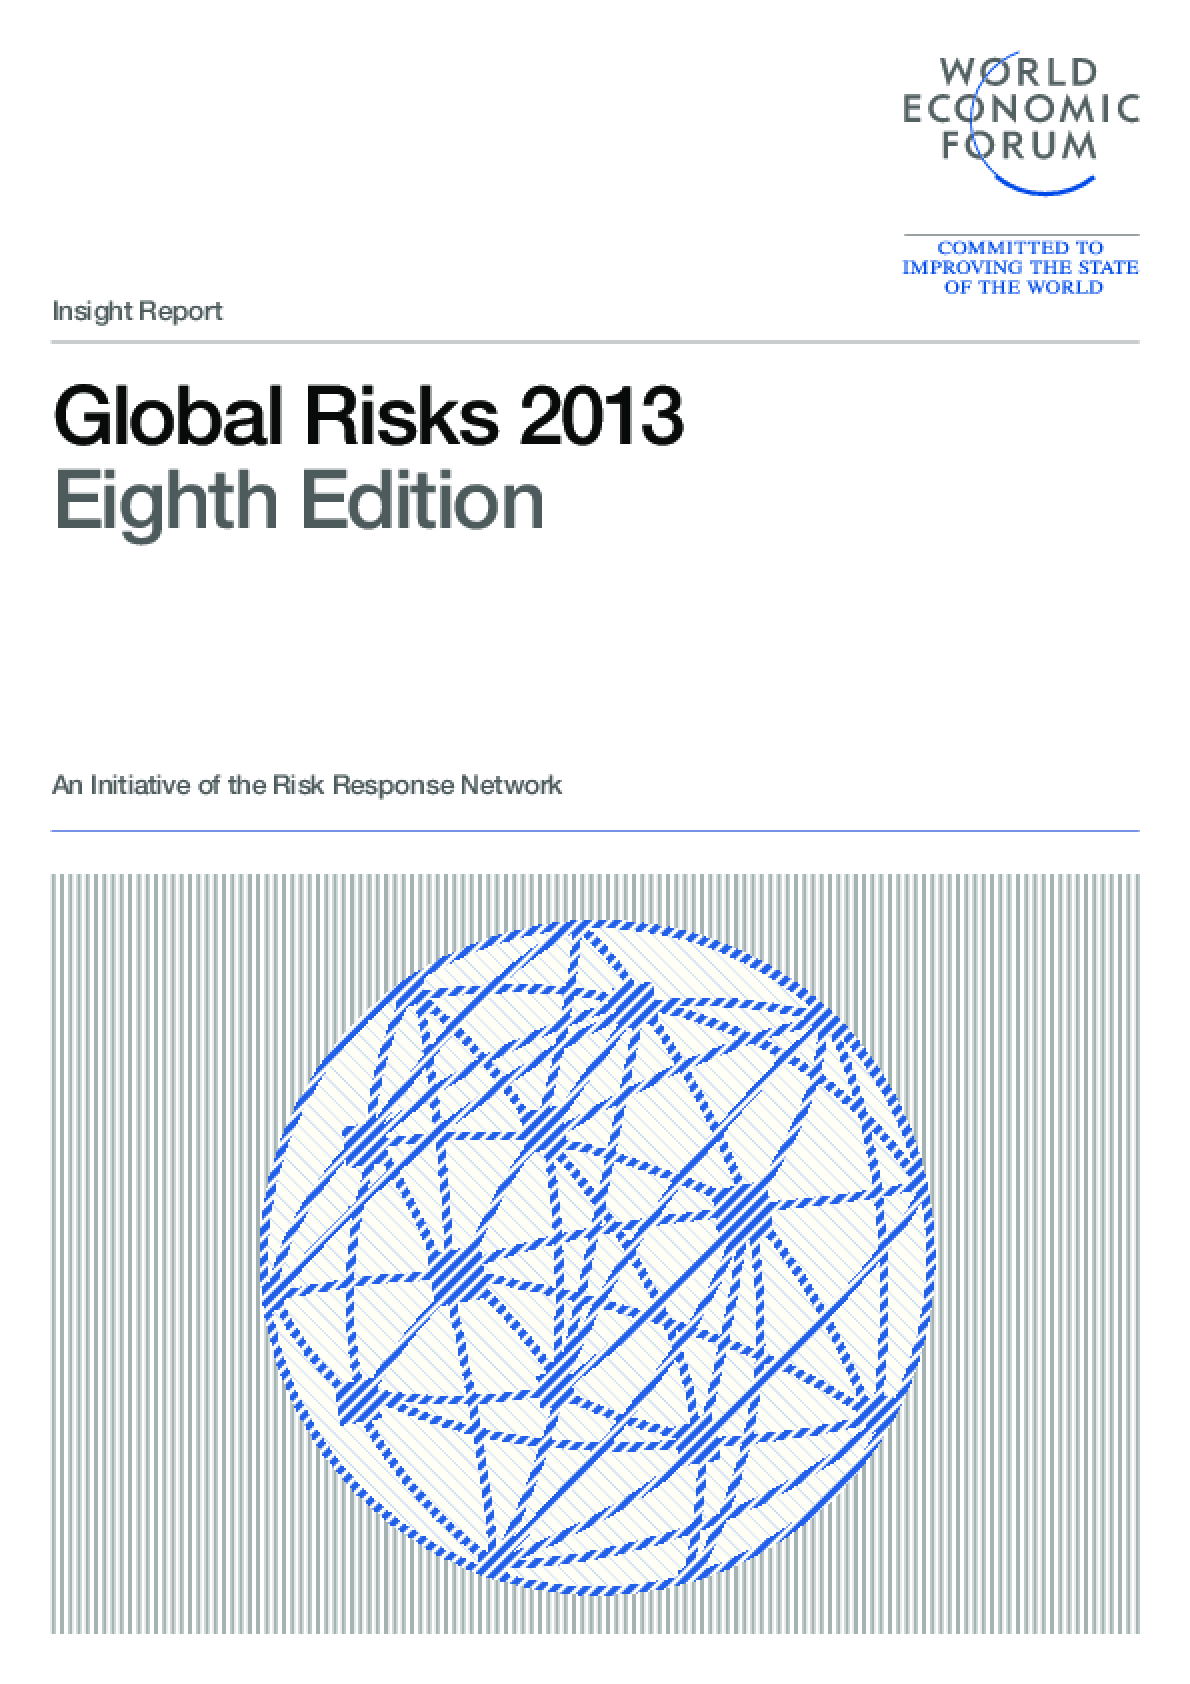 Global Risks 2013, Eighth Edition